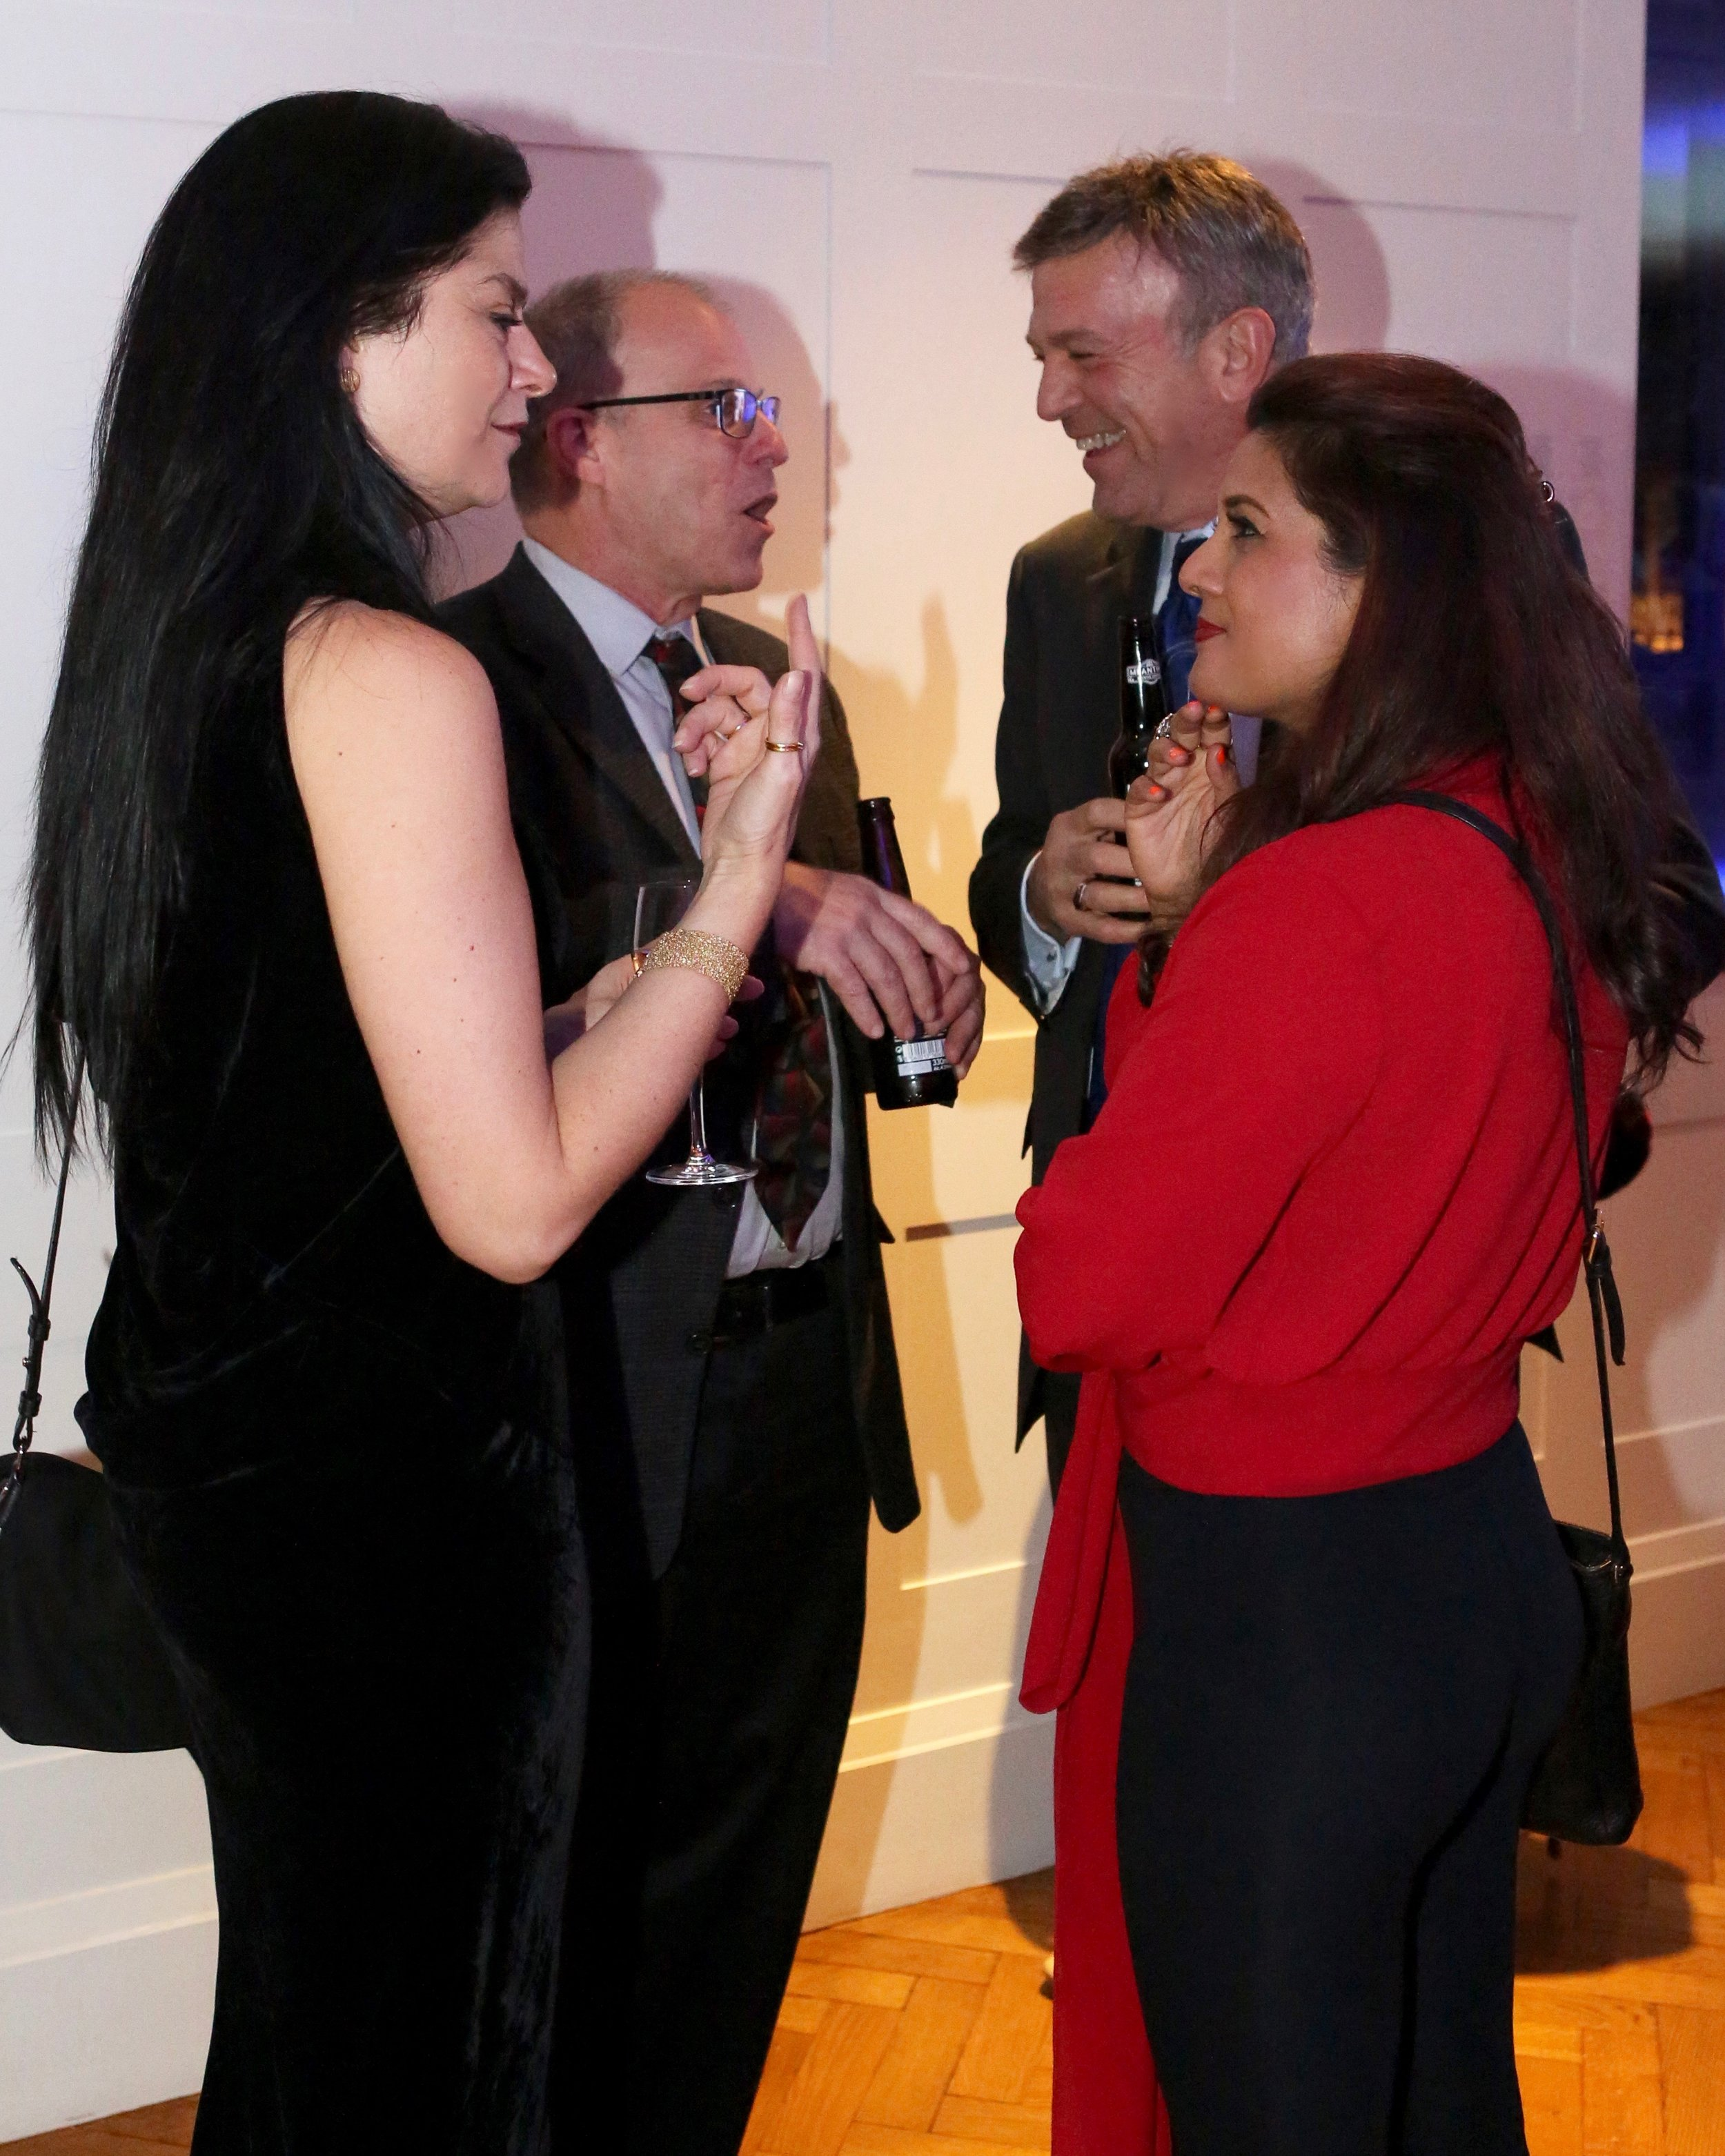 Chandra Horn, Reena Ahluwalia, John Bradshaw, Richard Drucker at the Gem-A Conference. Image: Henry Mesa, Gem-A